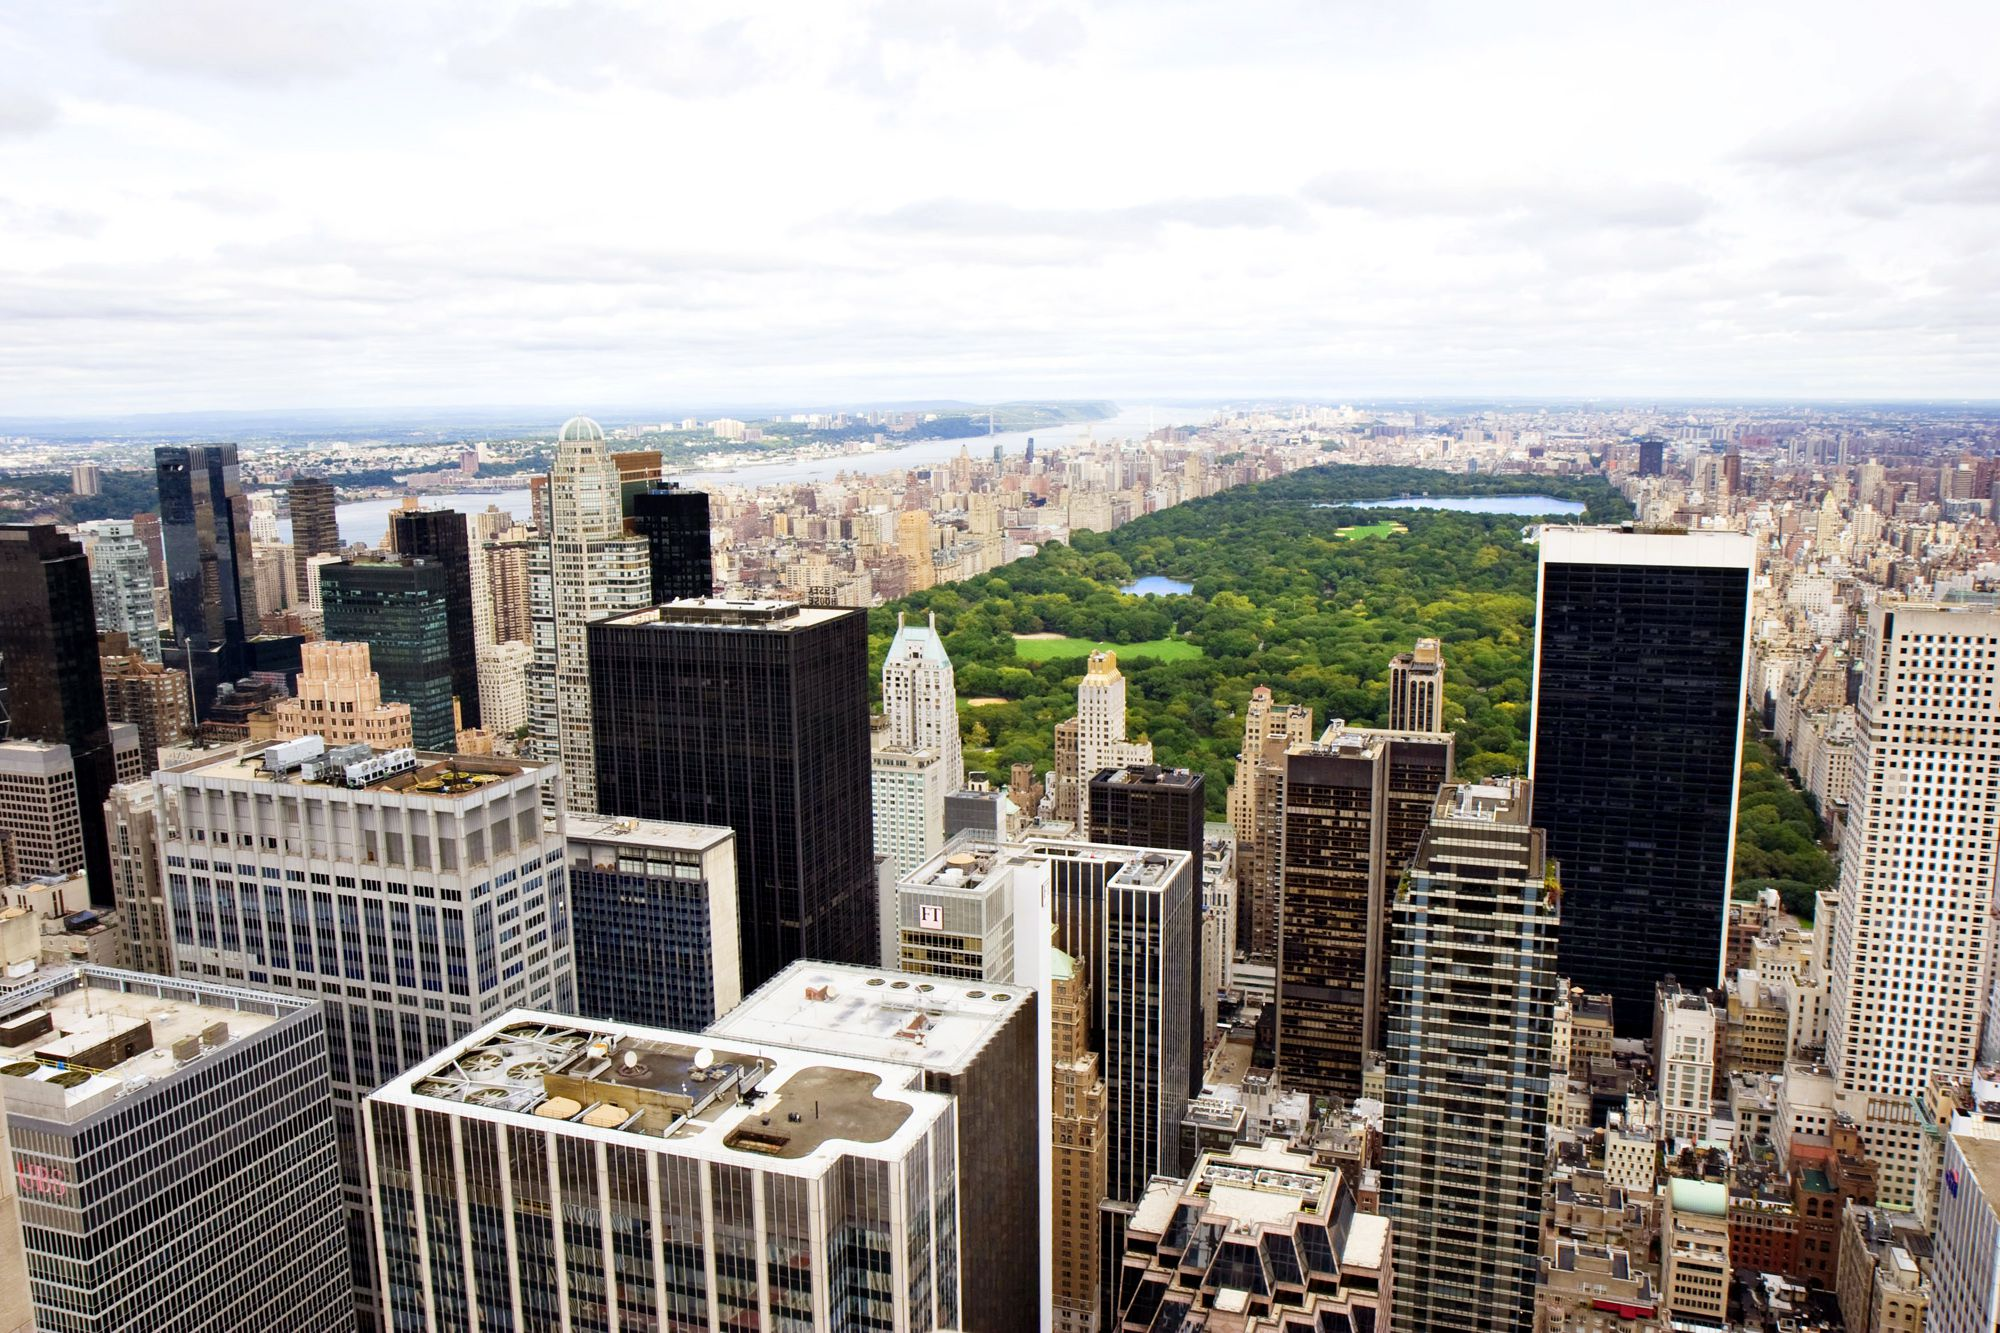 Top 10 things to do in nyc for first time visitors for Top ten things to do in ny